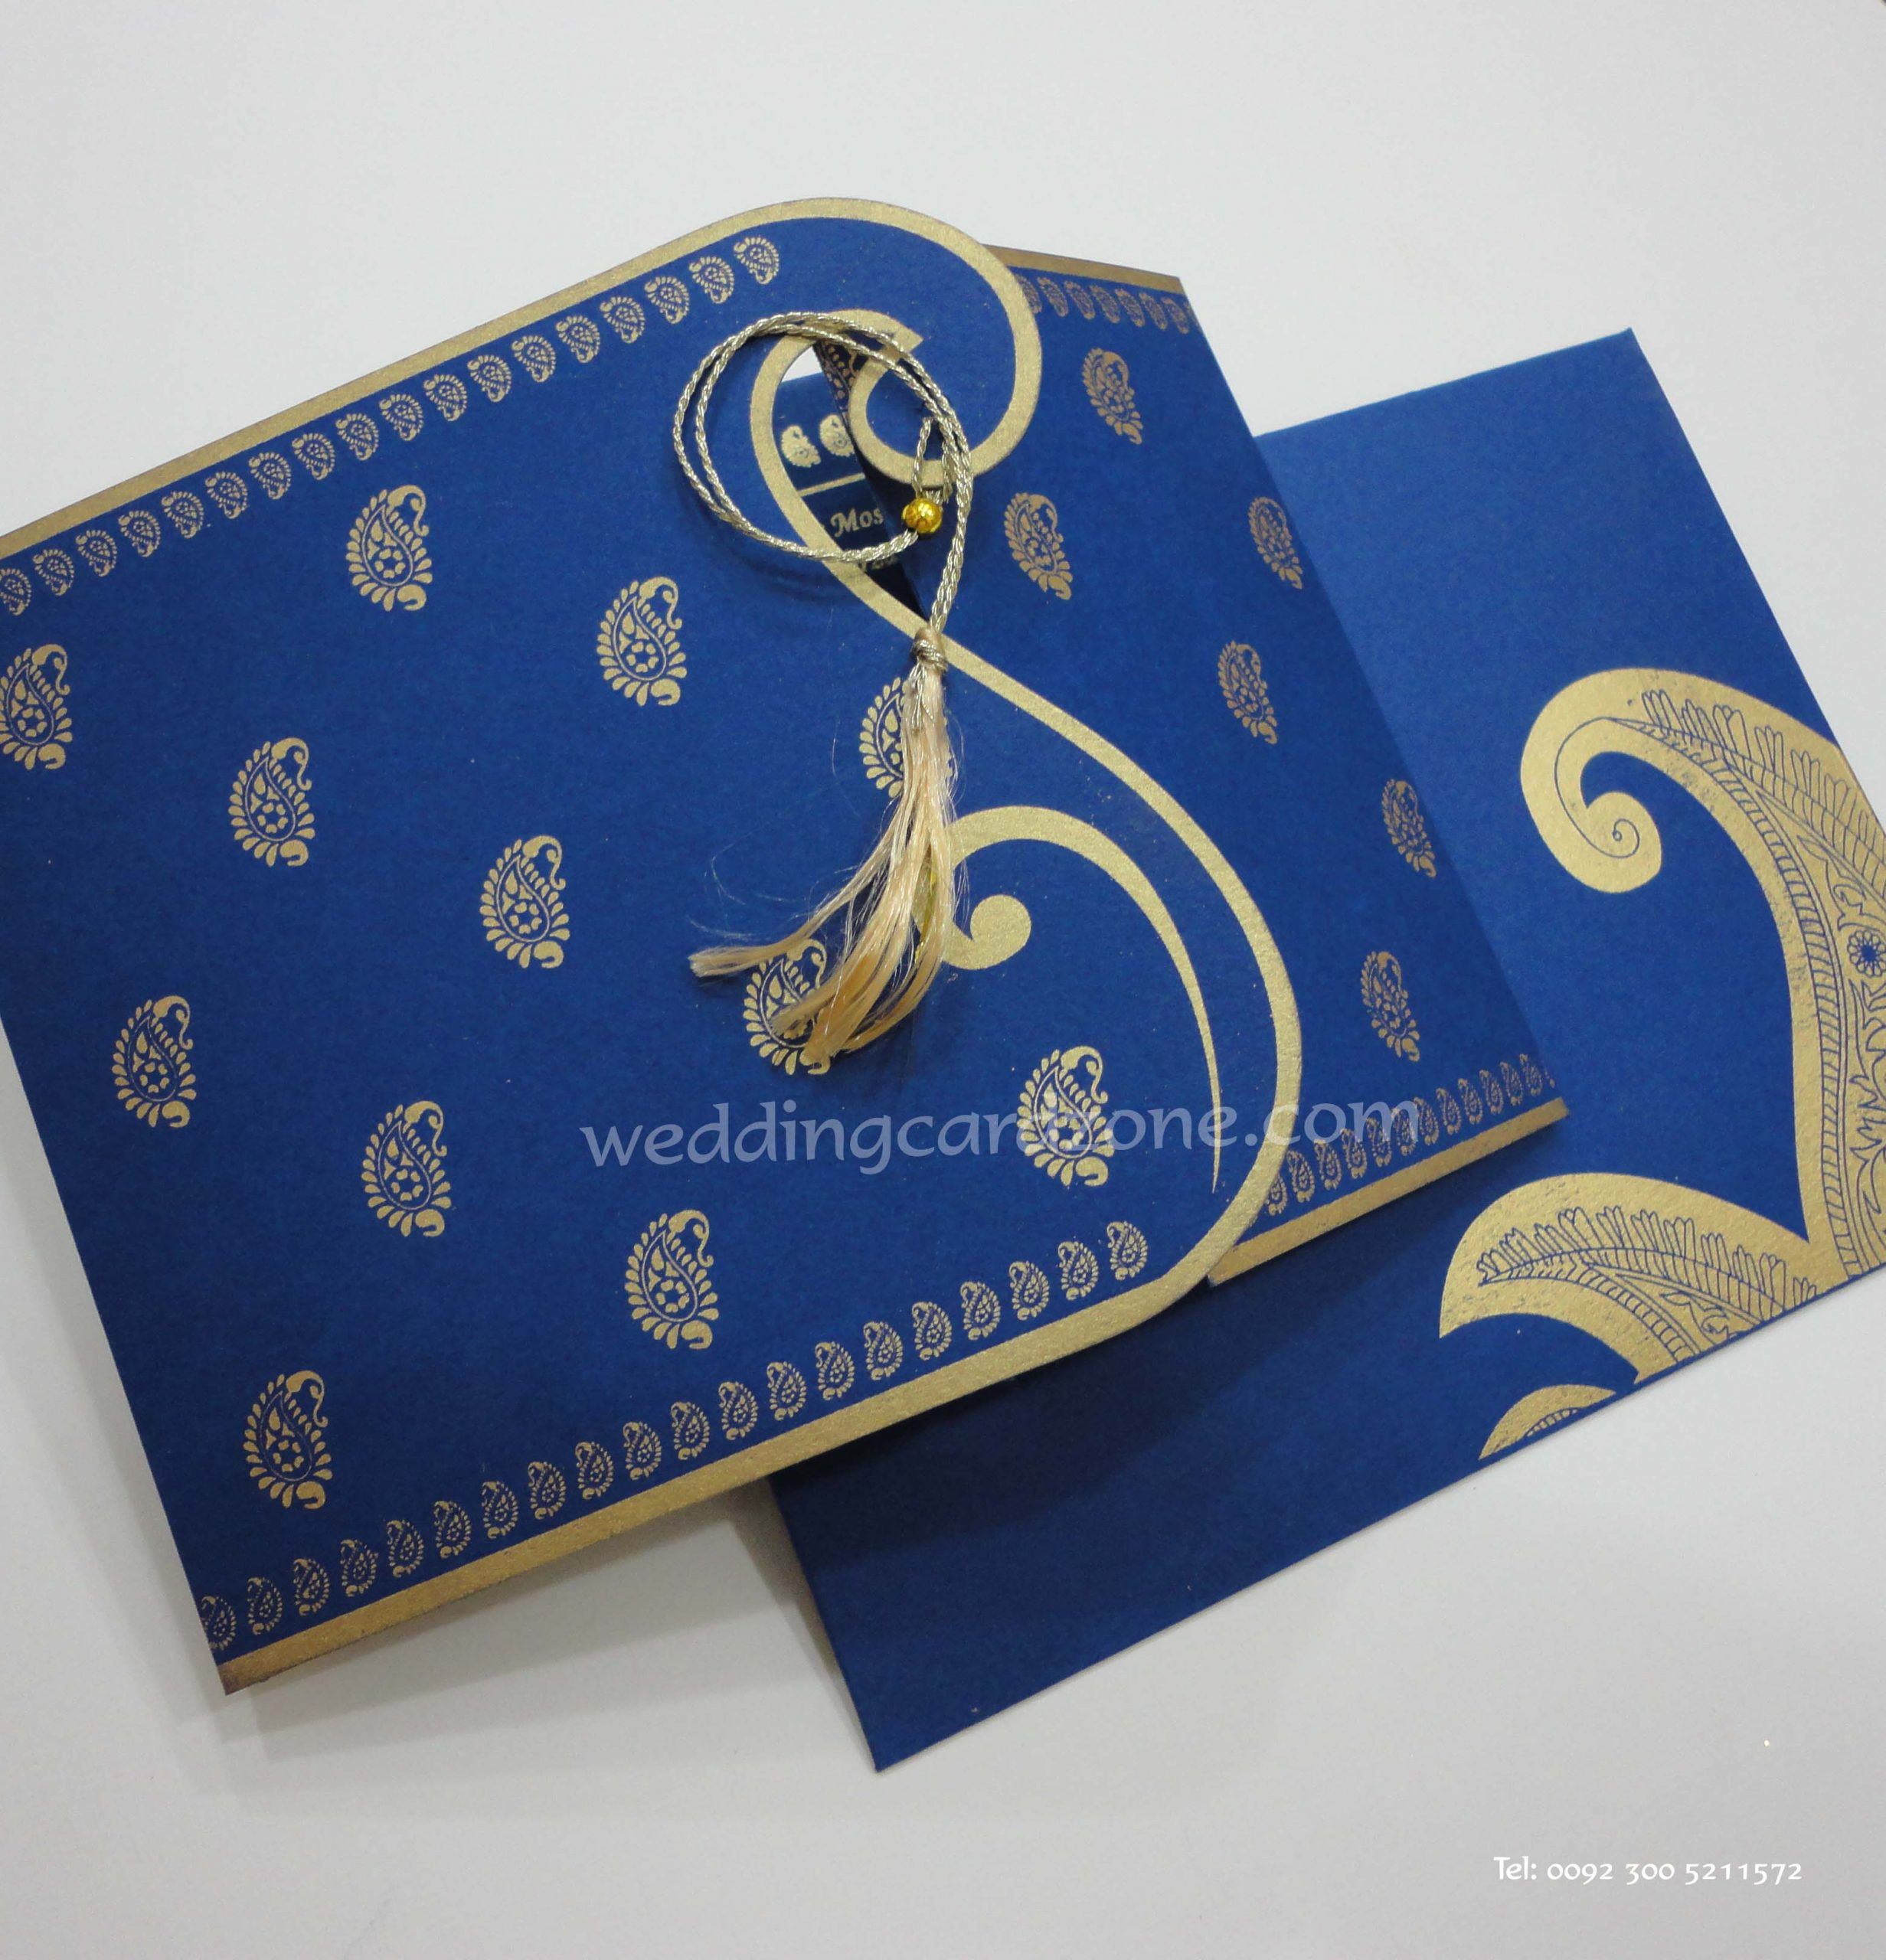 Pakistani Wedding Cards Wedding Cards Collection Pakistan